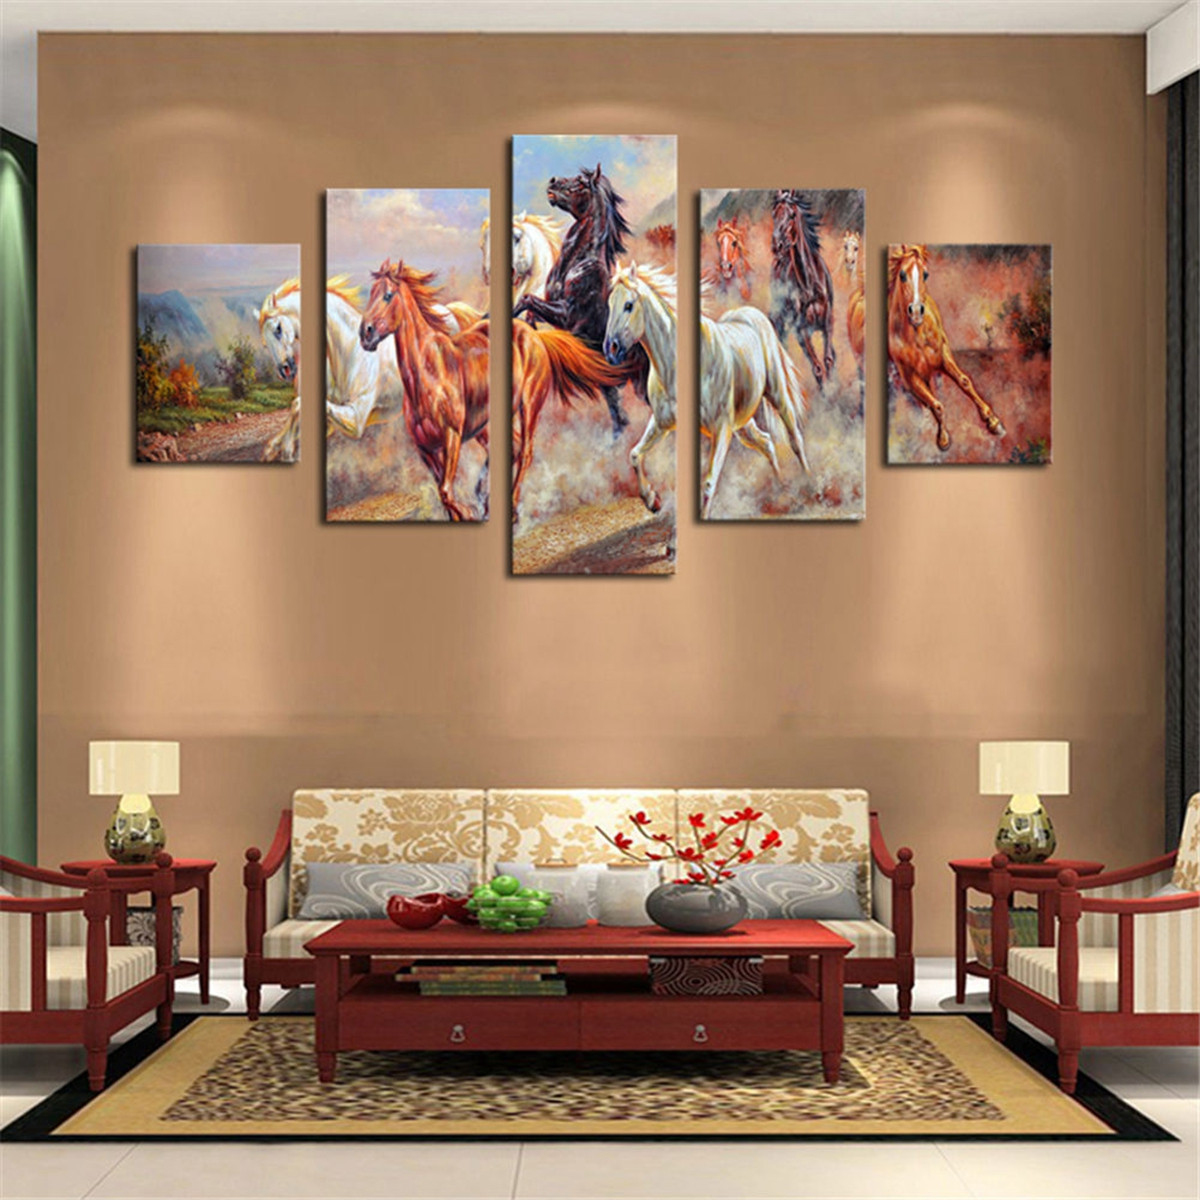 5pcs Horses Wall Painting Canvas Living Room Art Print Picture Decor